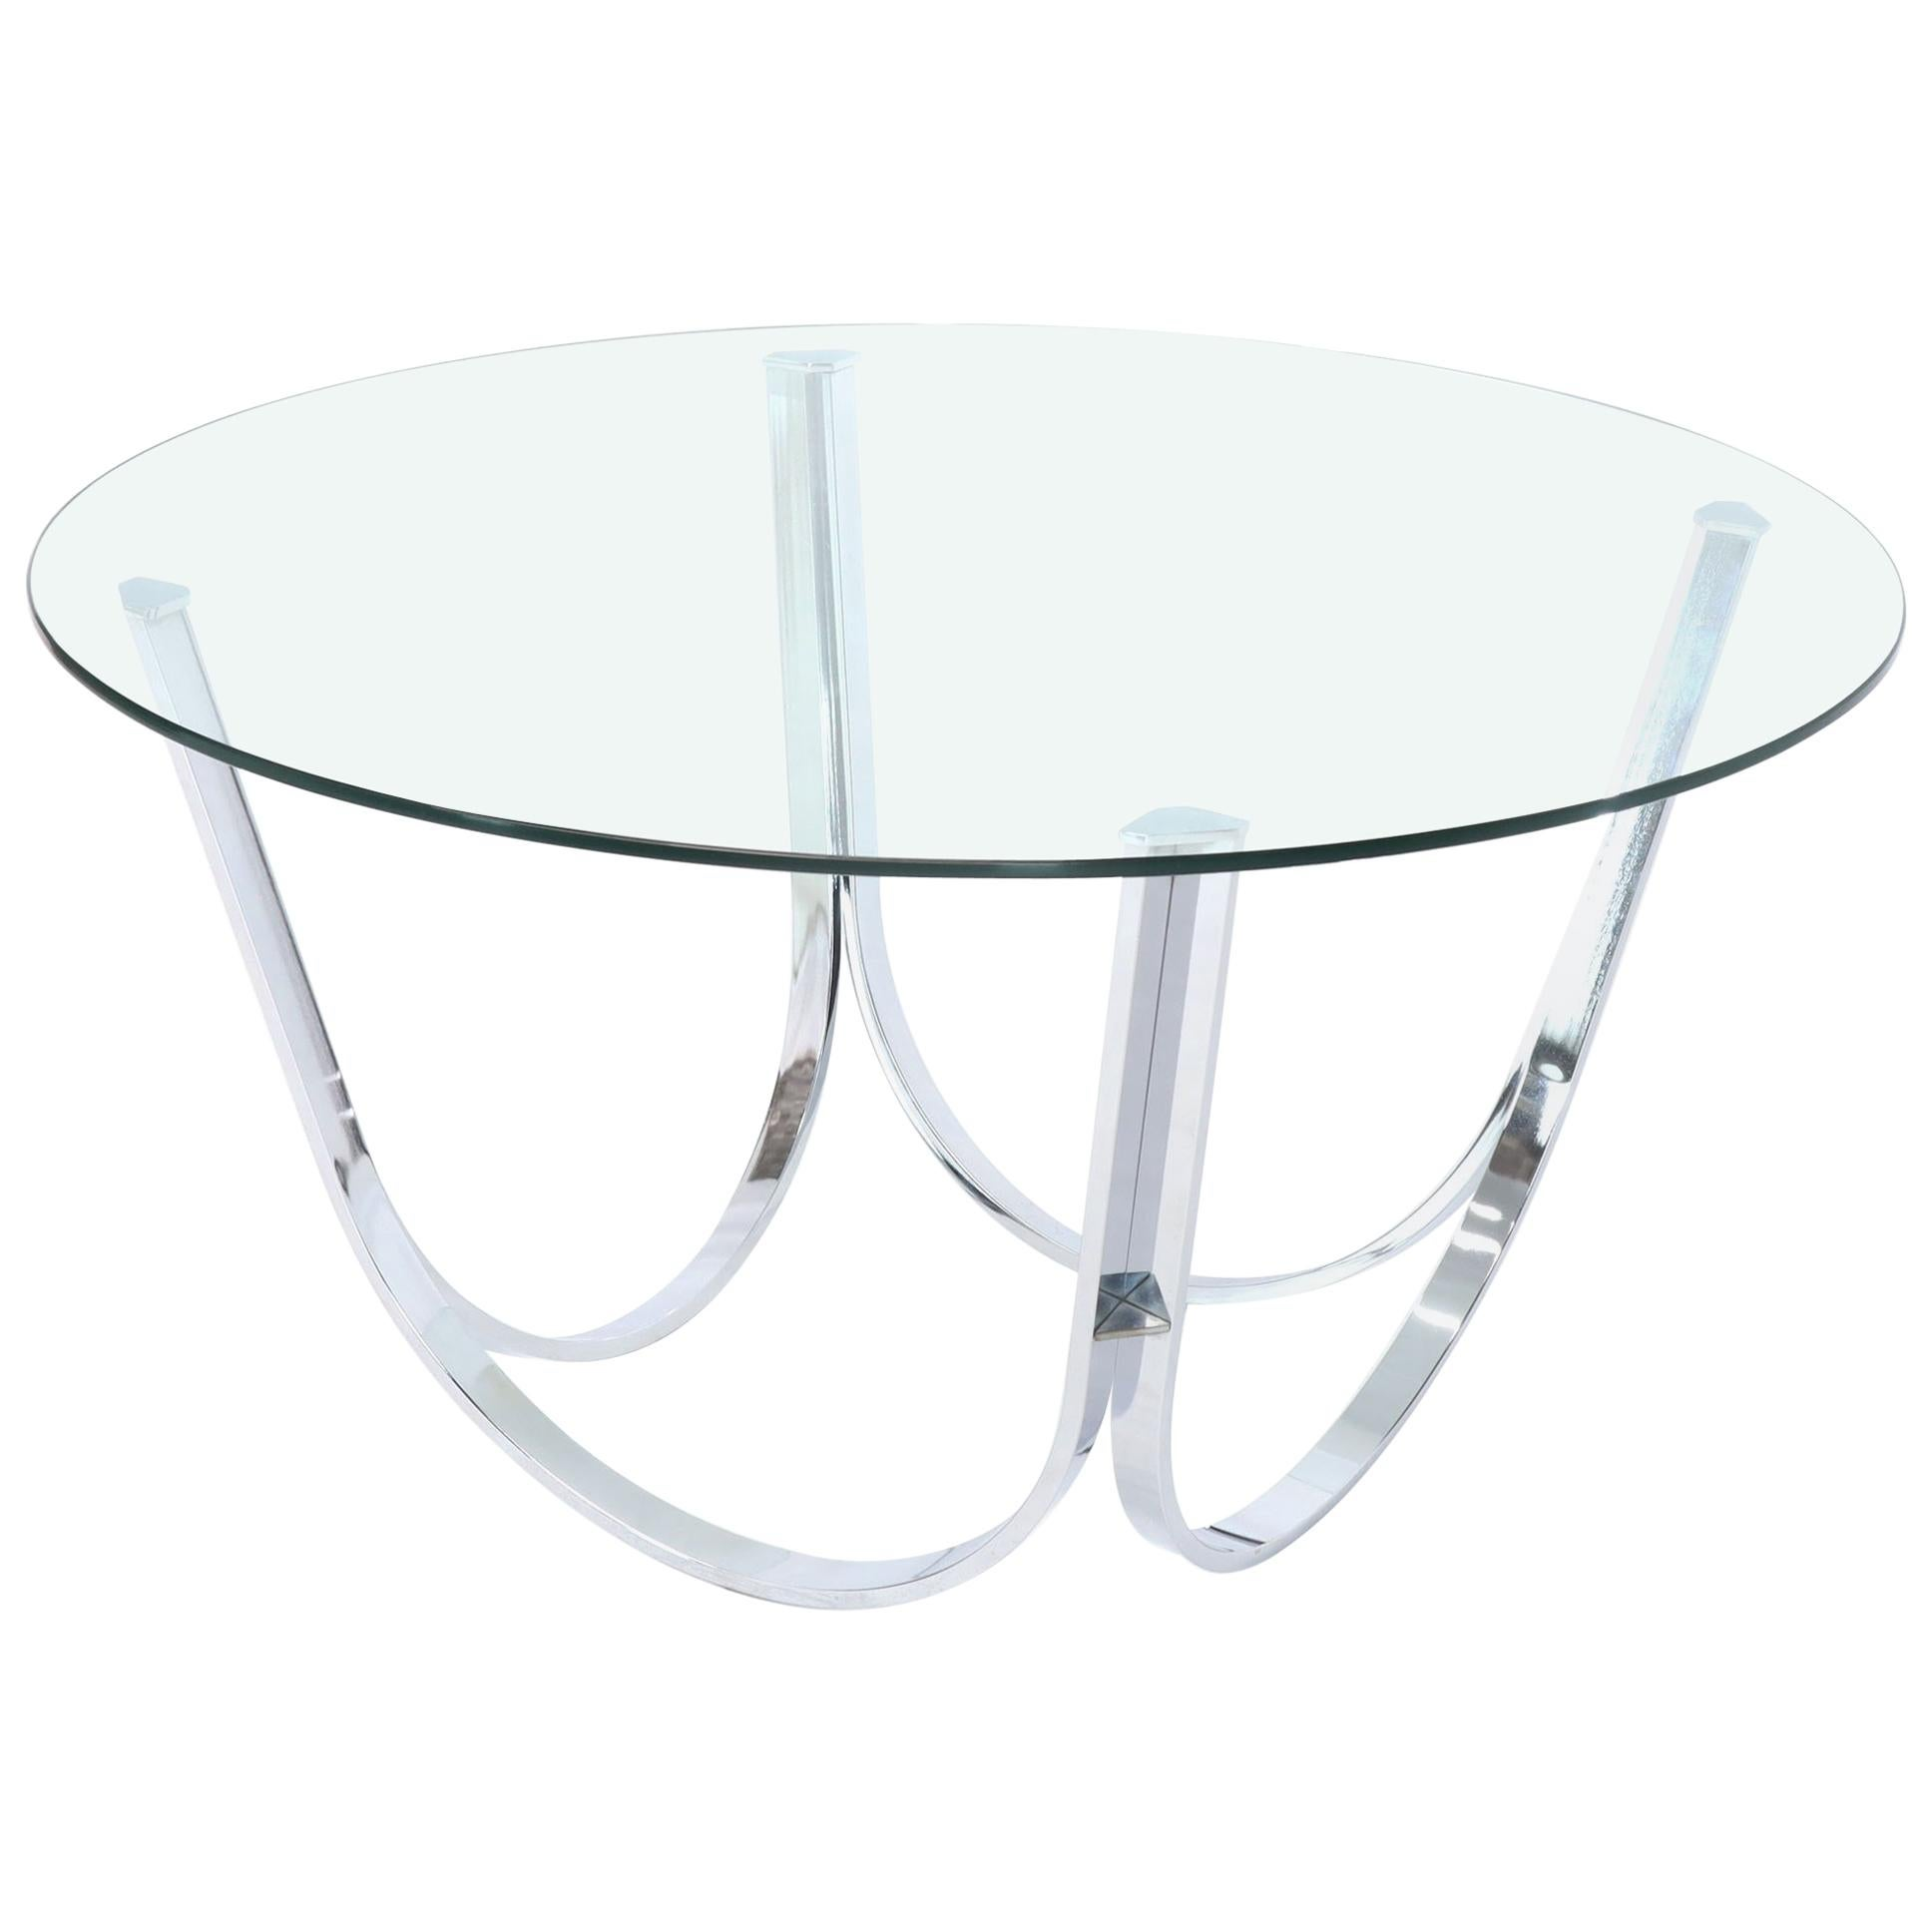 Tall Round Center Coffee Table Chrome and Glass